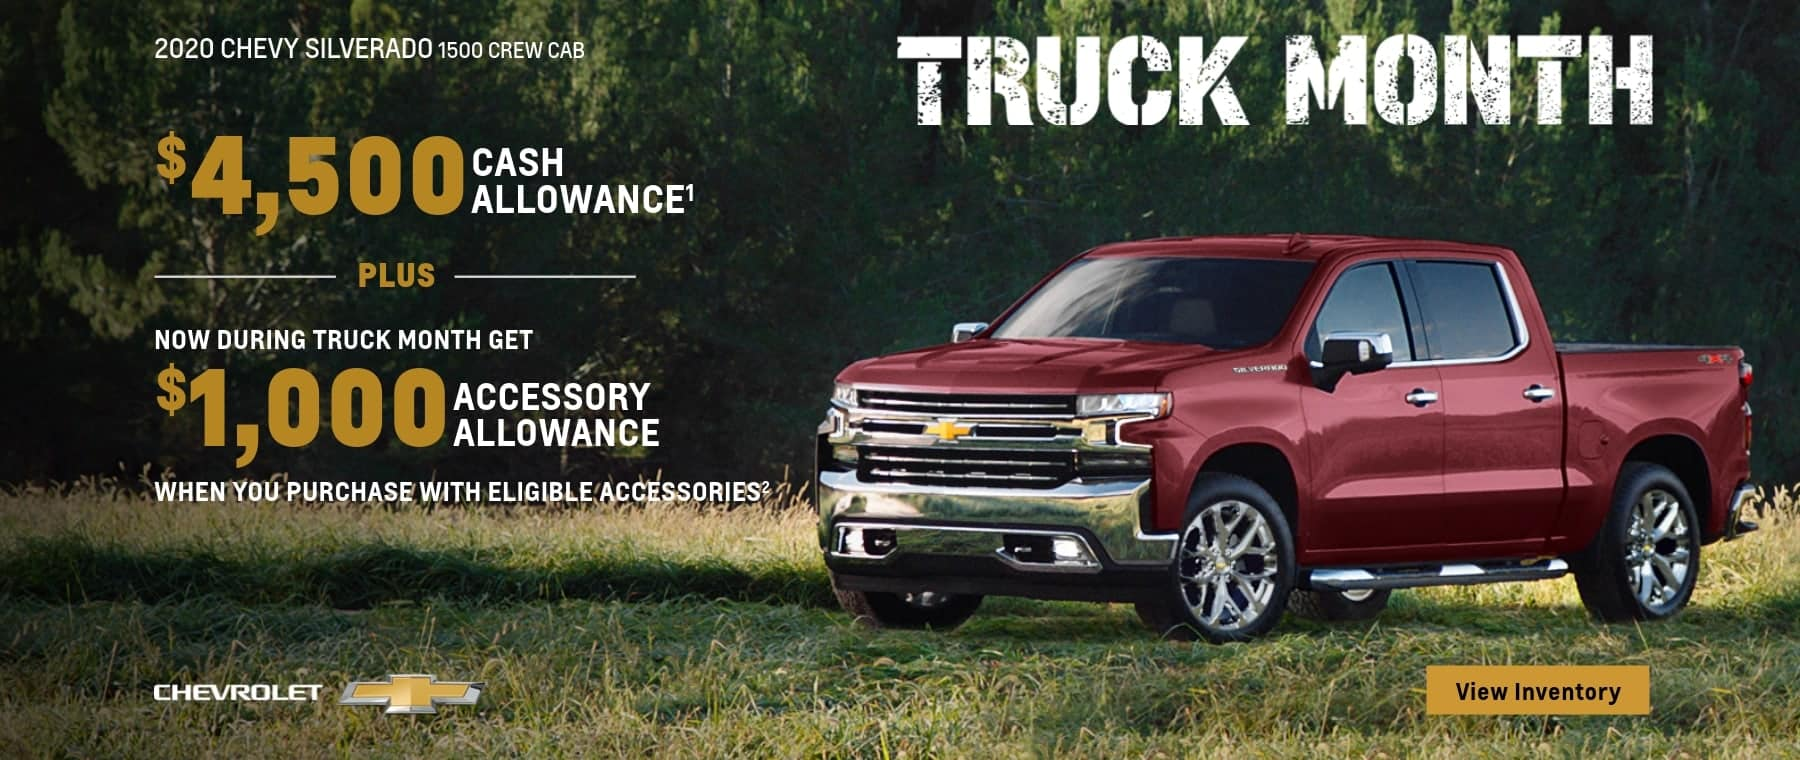 $4,500 Cash Allowance plus now during truck month get $1,000 accessory allowance when you purchase with eligible accessories.